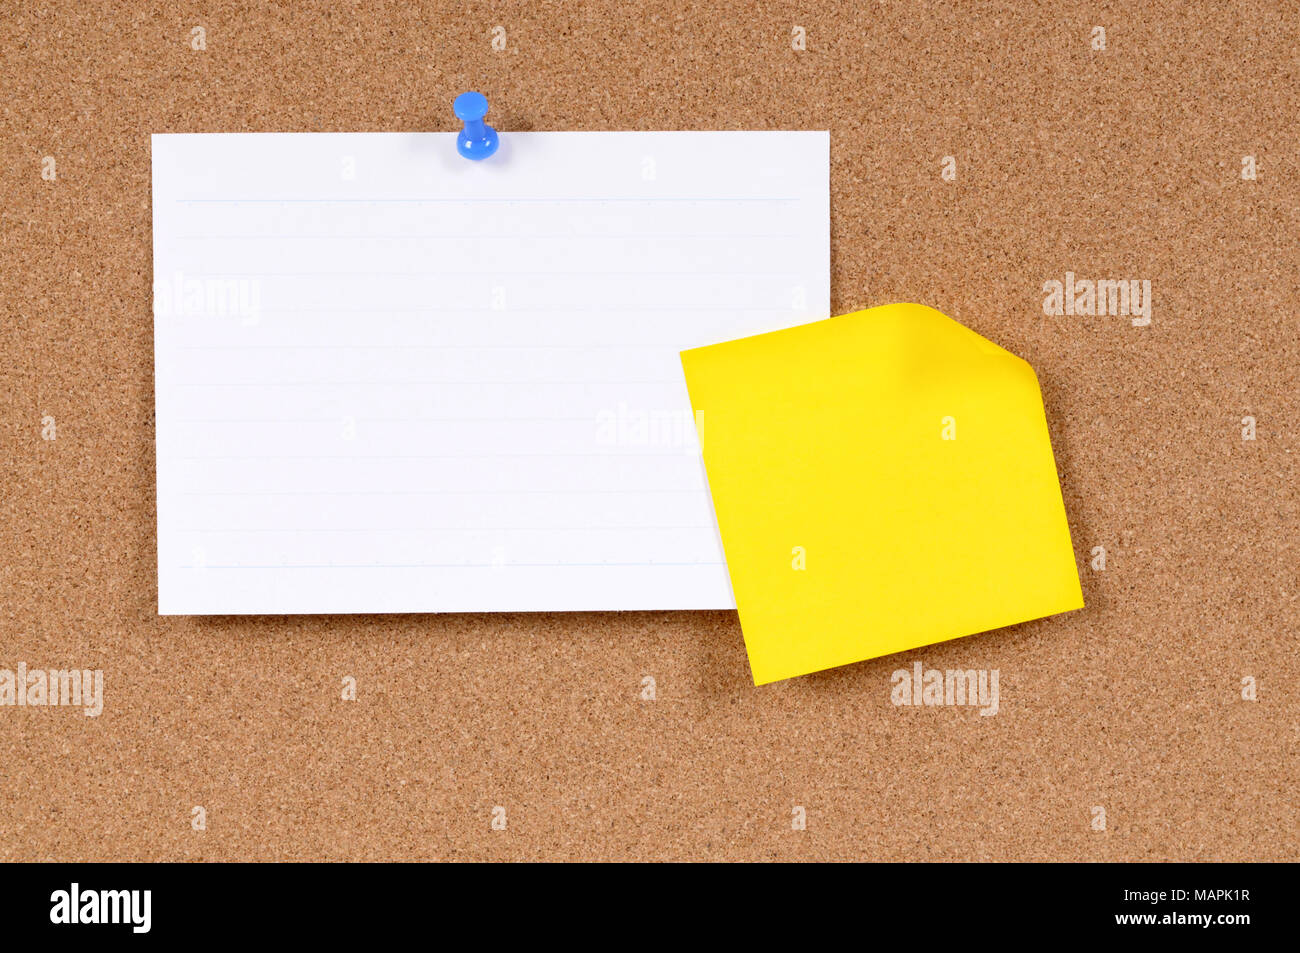 Office index card and sticky note pinned to a cork bulletin